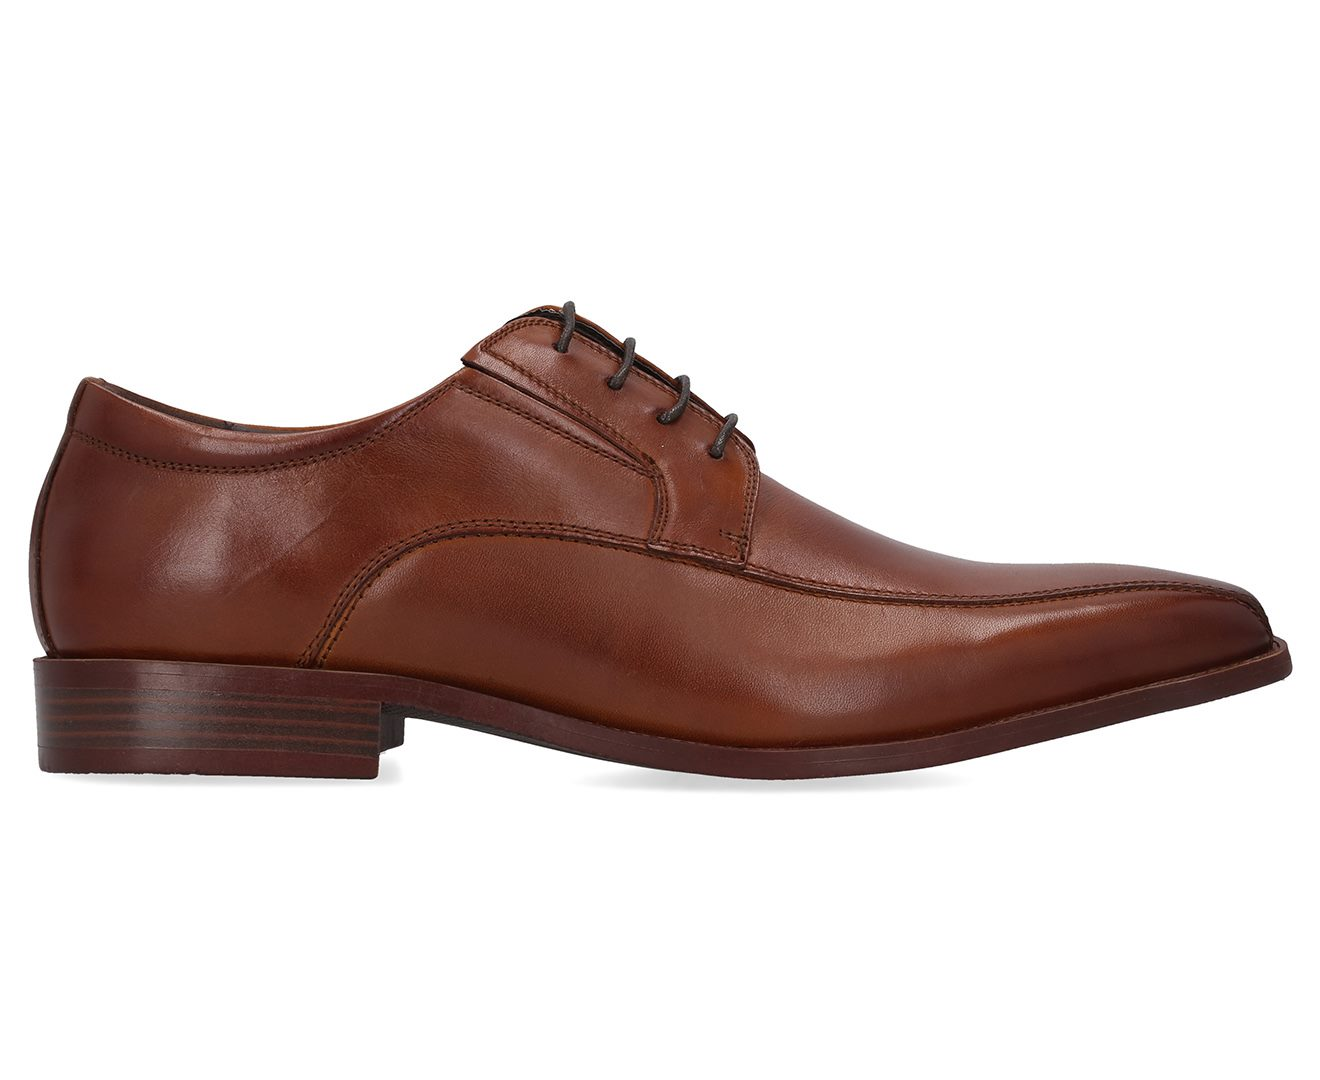 Dress Shoe Whisky in Brown Dress Shoes